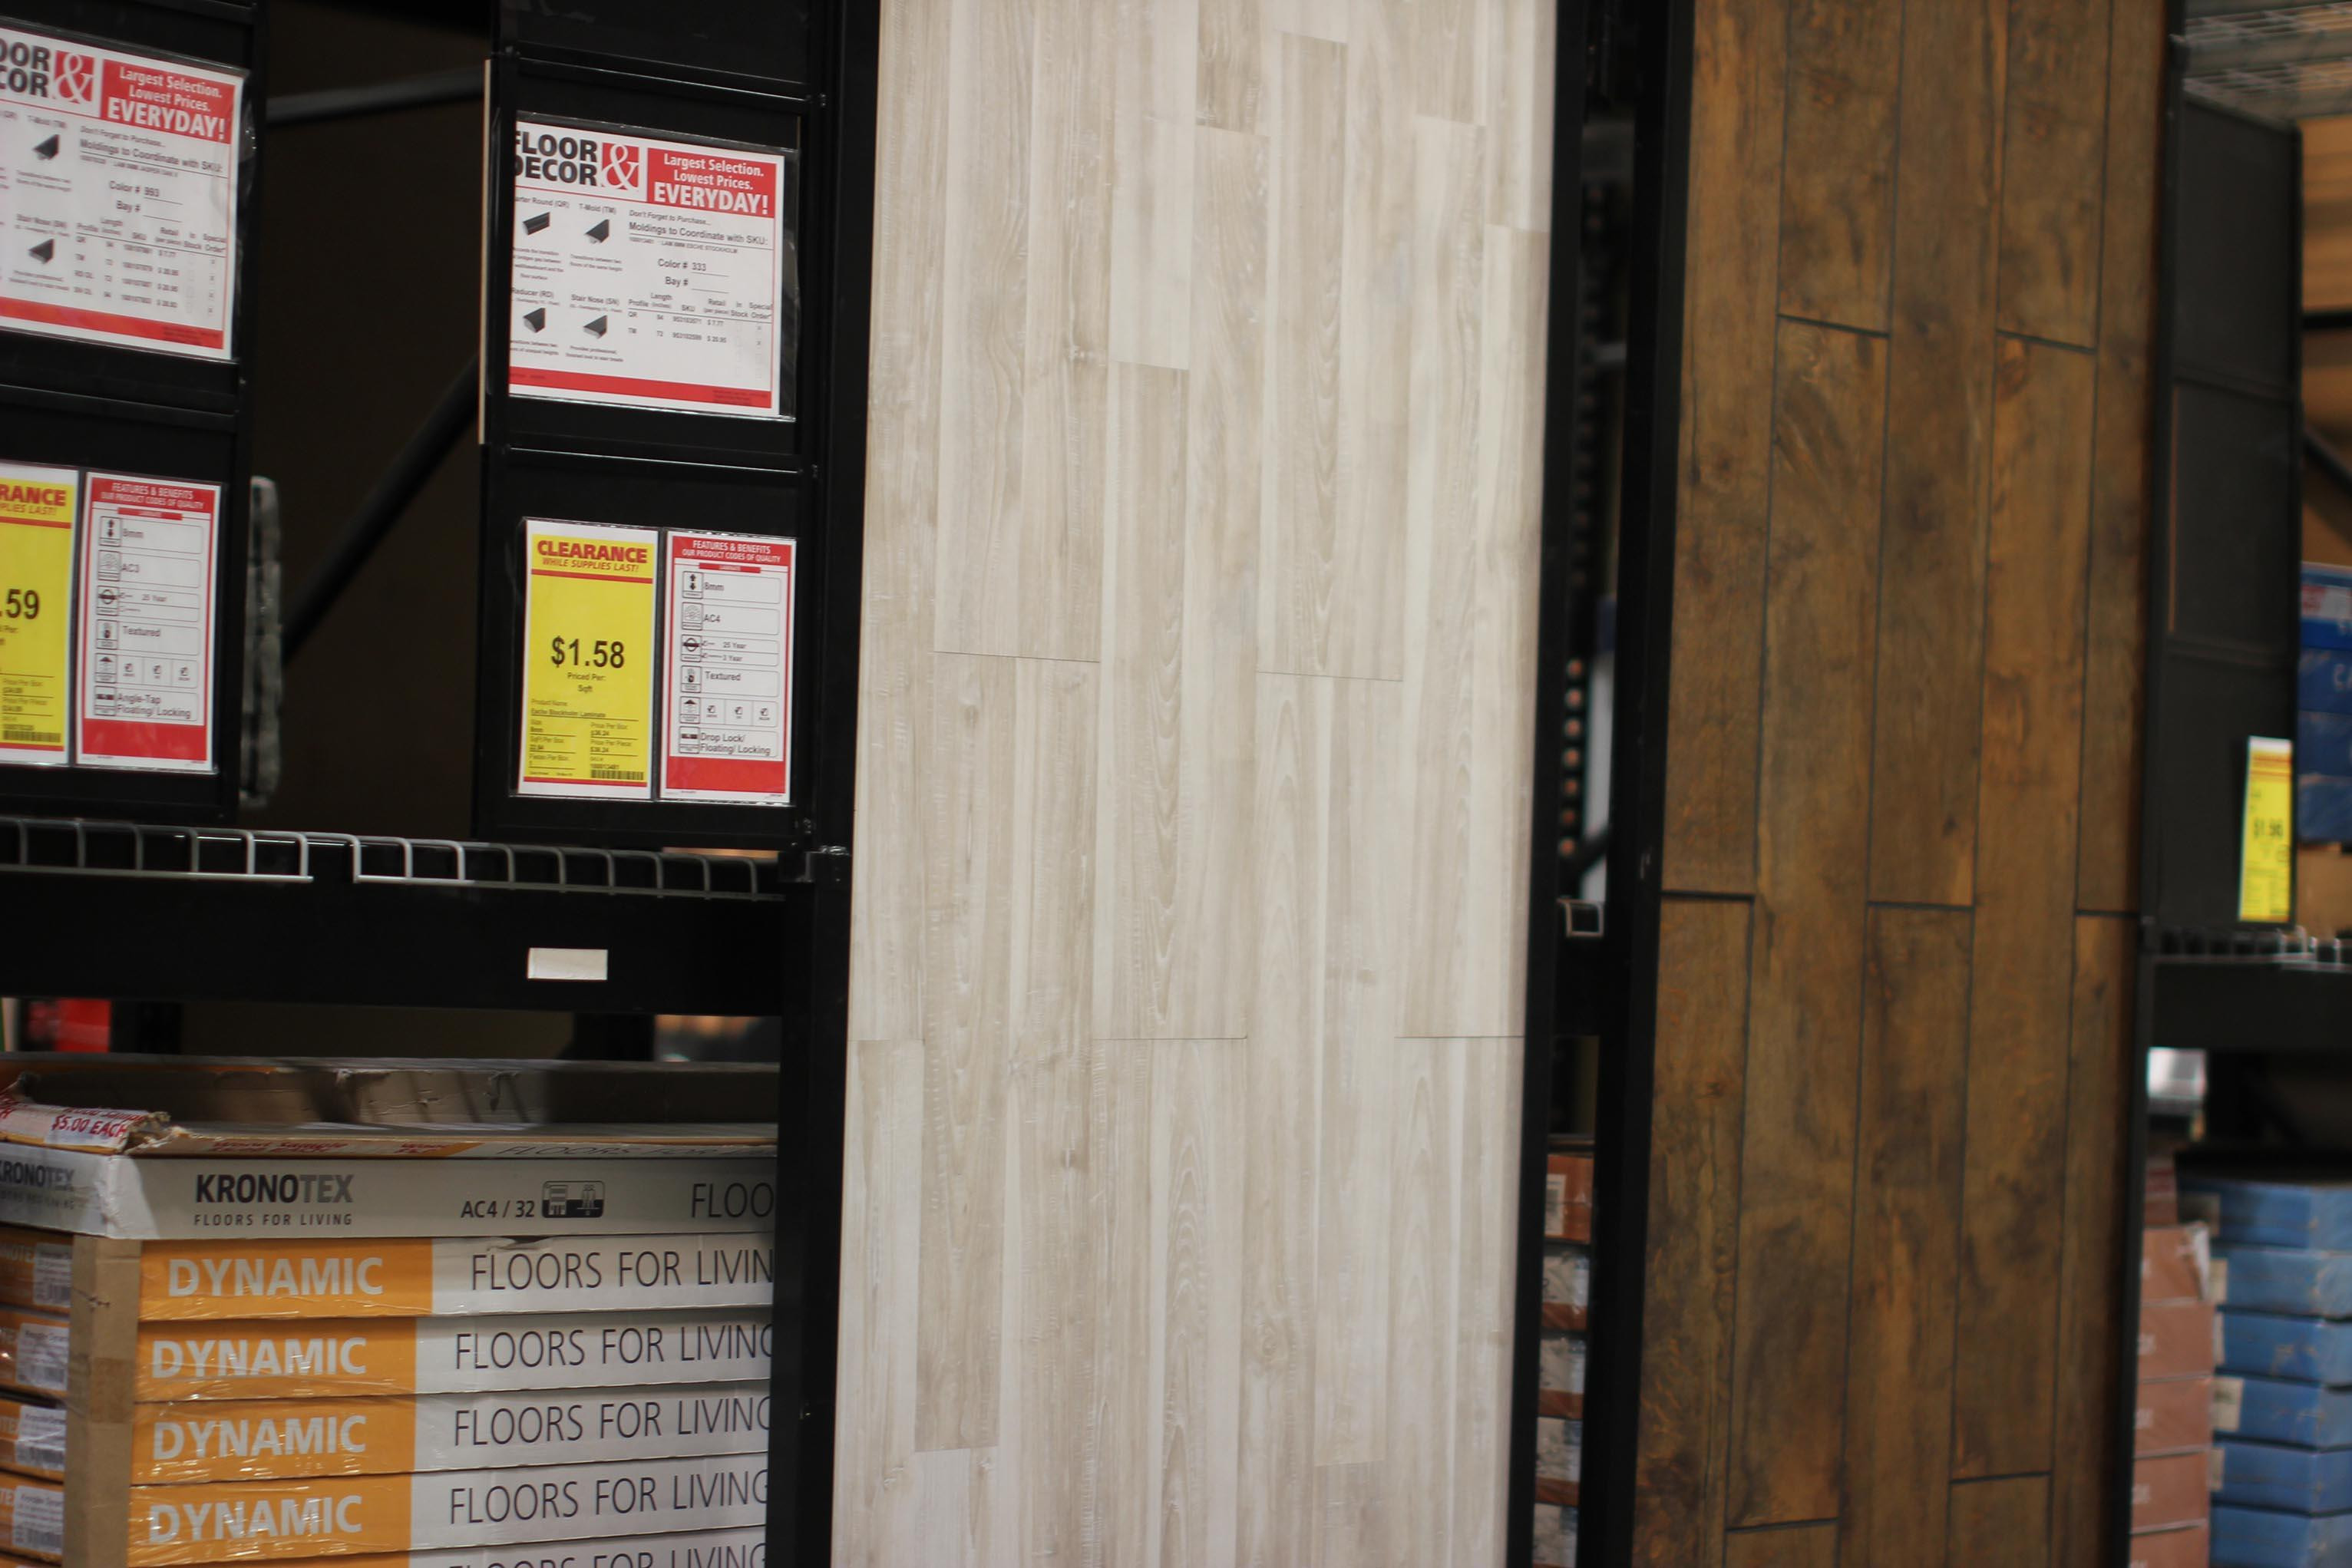 hardwood floor supply dallas of floor decor outlets 1080 w sunset rd henderson nv interior for floor decor outlets 1080 w sunset rd henderson nv interior decorators design consultants mapquest